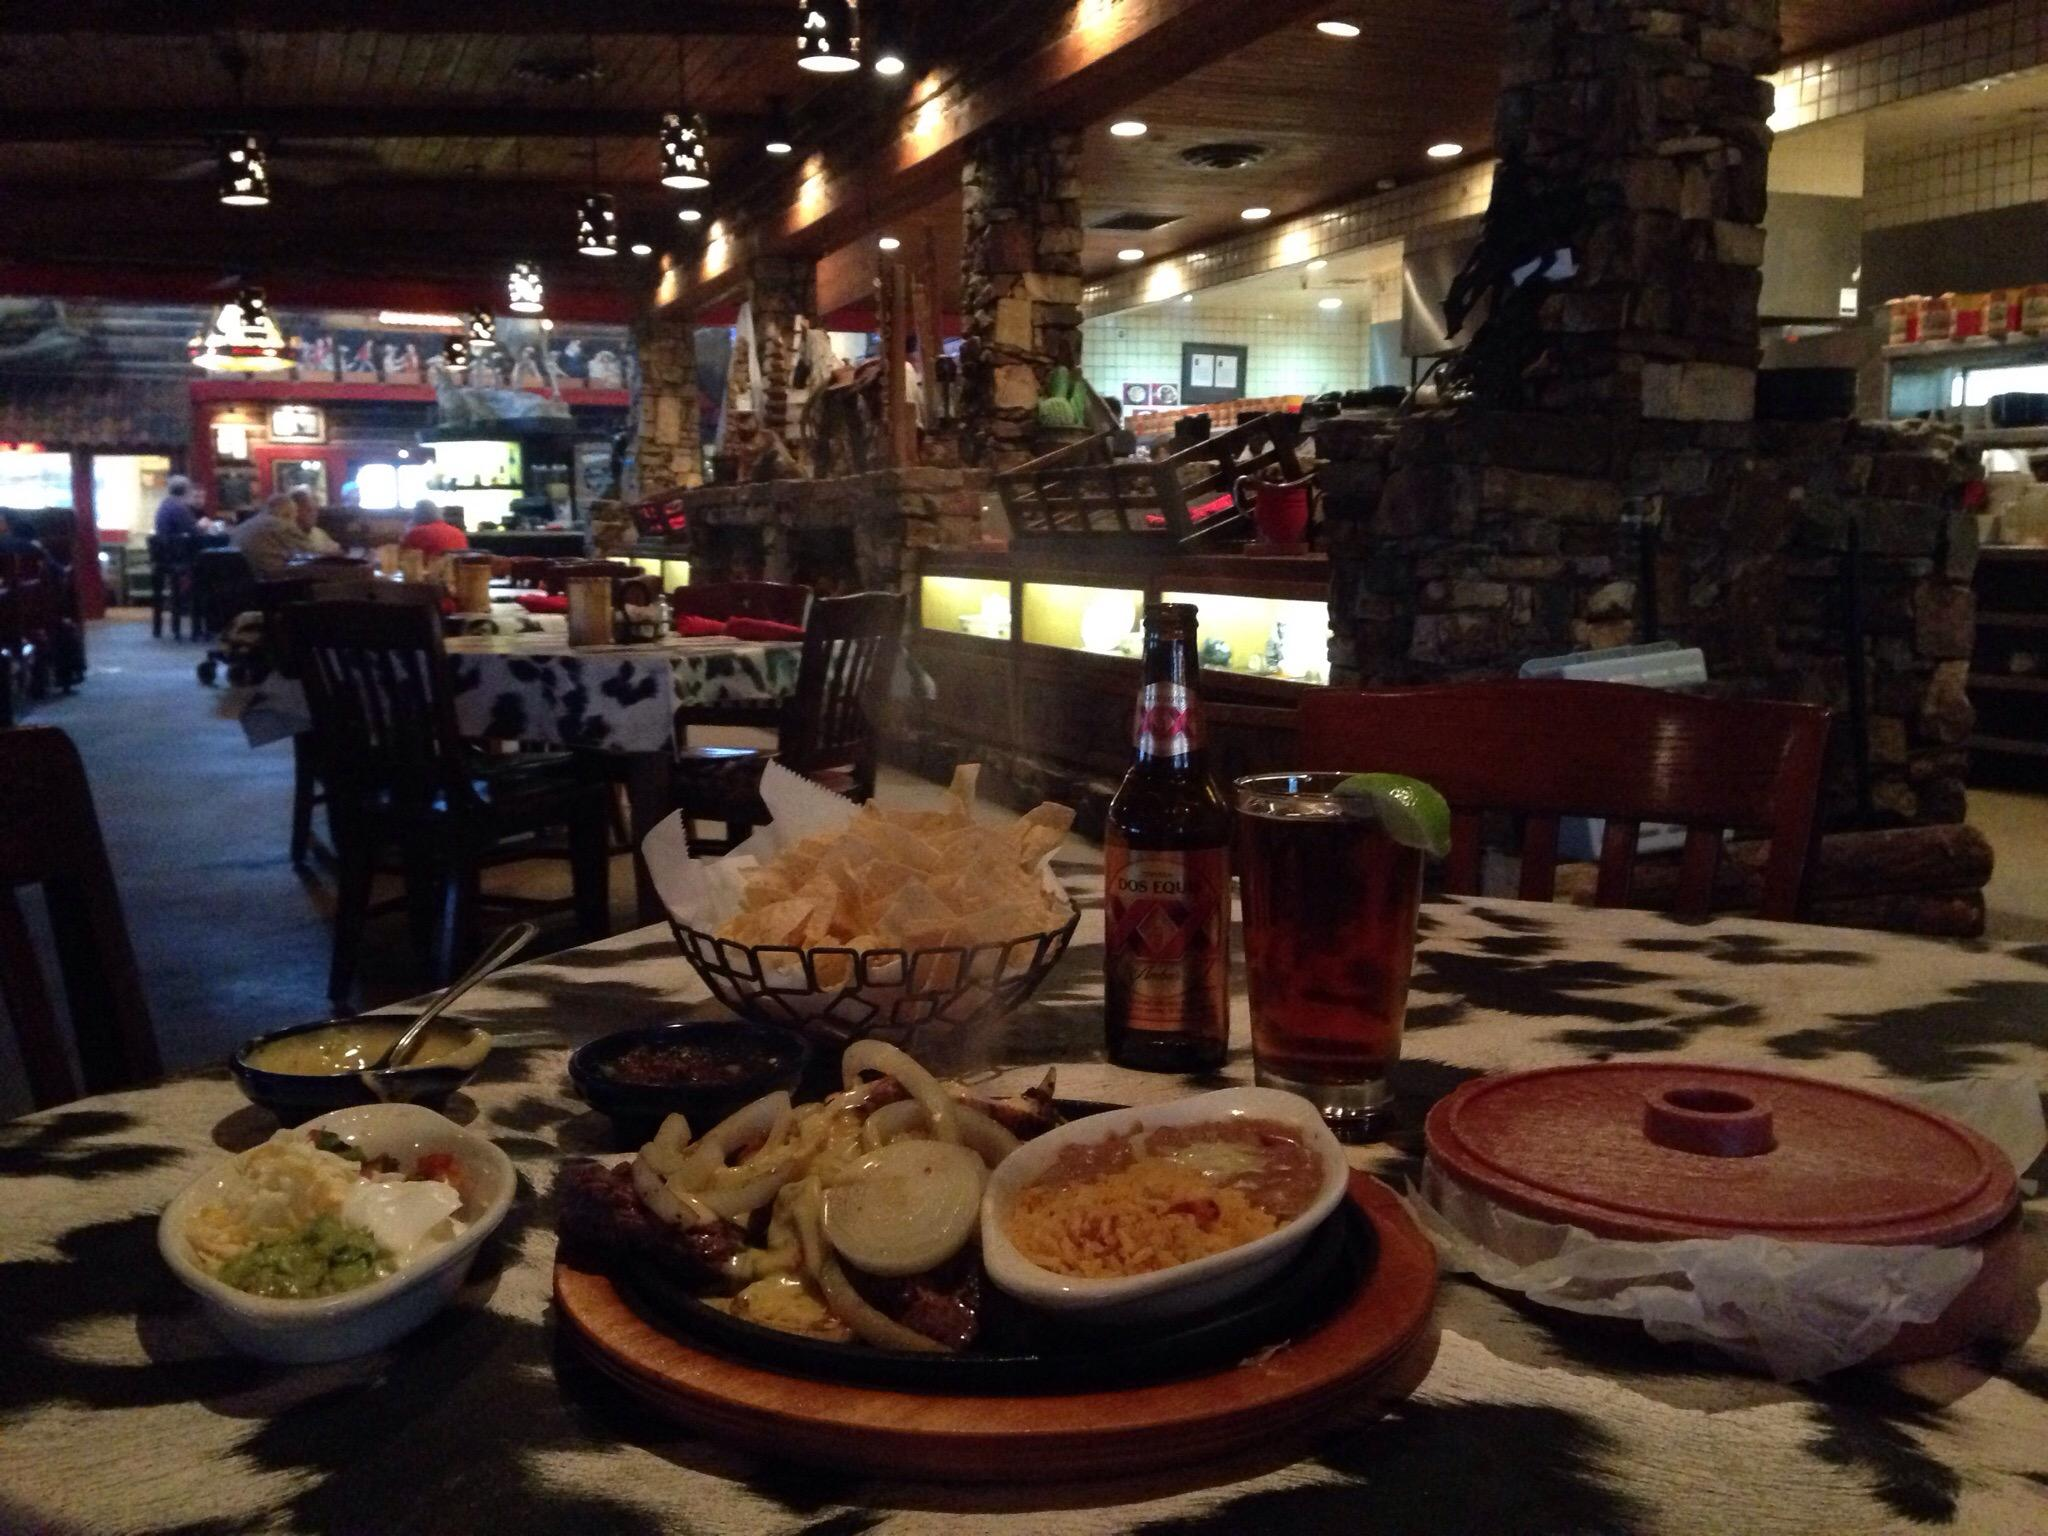 Texas, United States Food Guide: 10 Mexican food Must-Eat Restaurants & Street Food Stalls in Colleyville